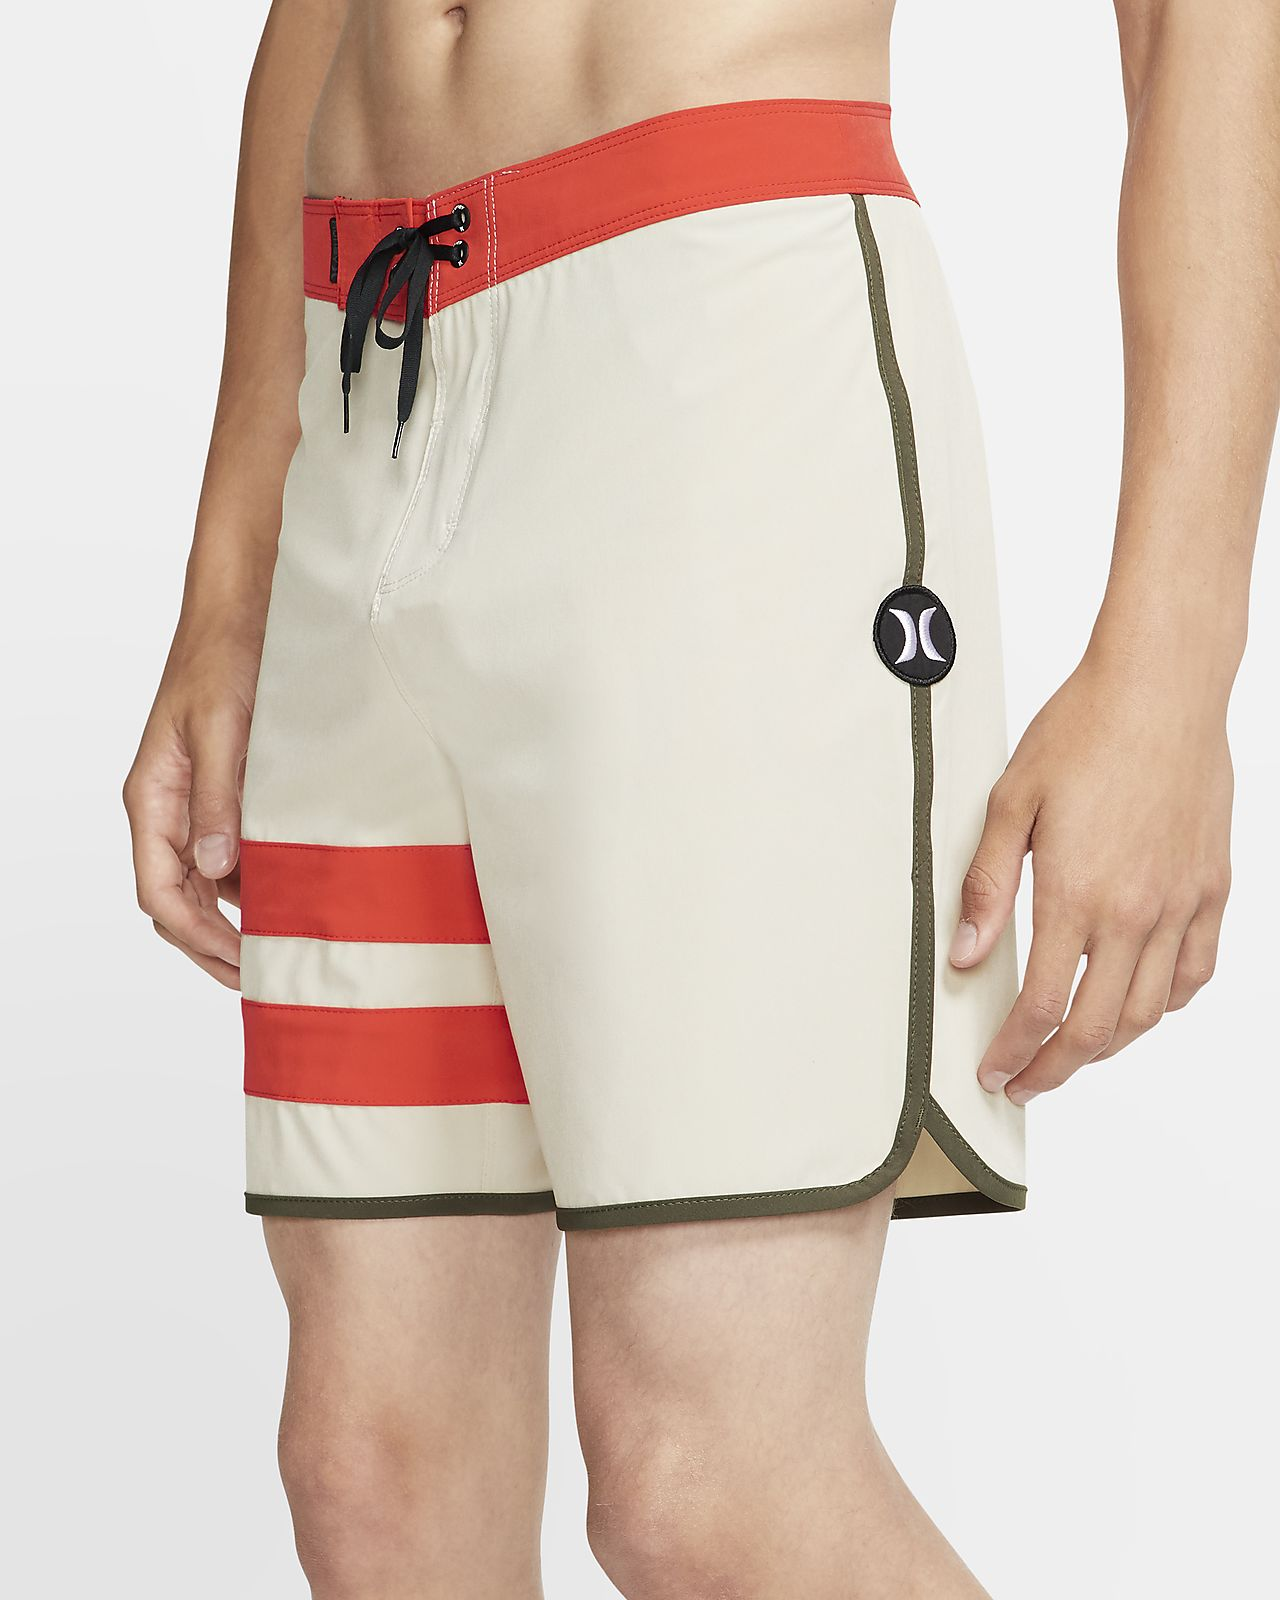 Shorts de playa de 46 cm para hombre Hurley Phantom Block Party Solid